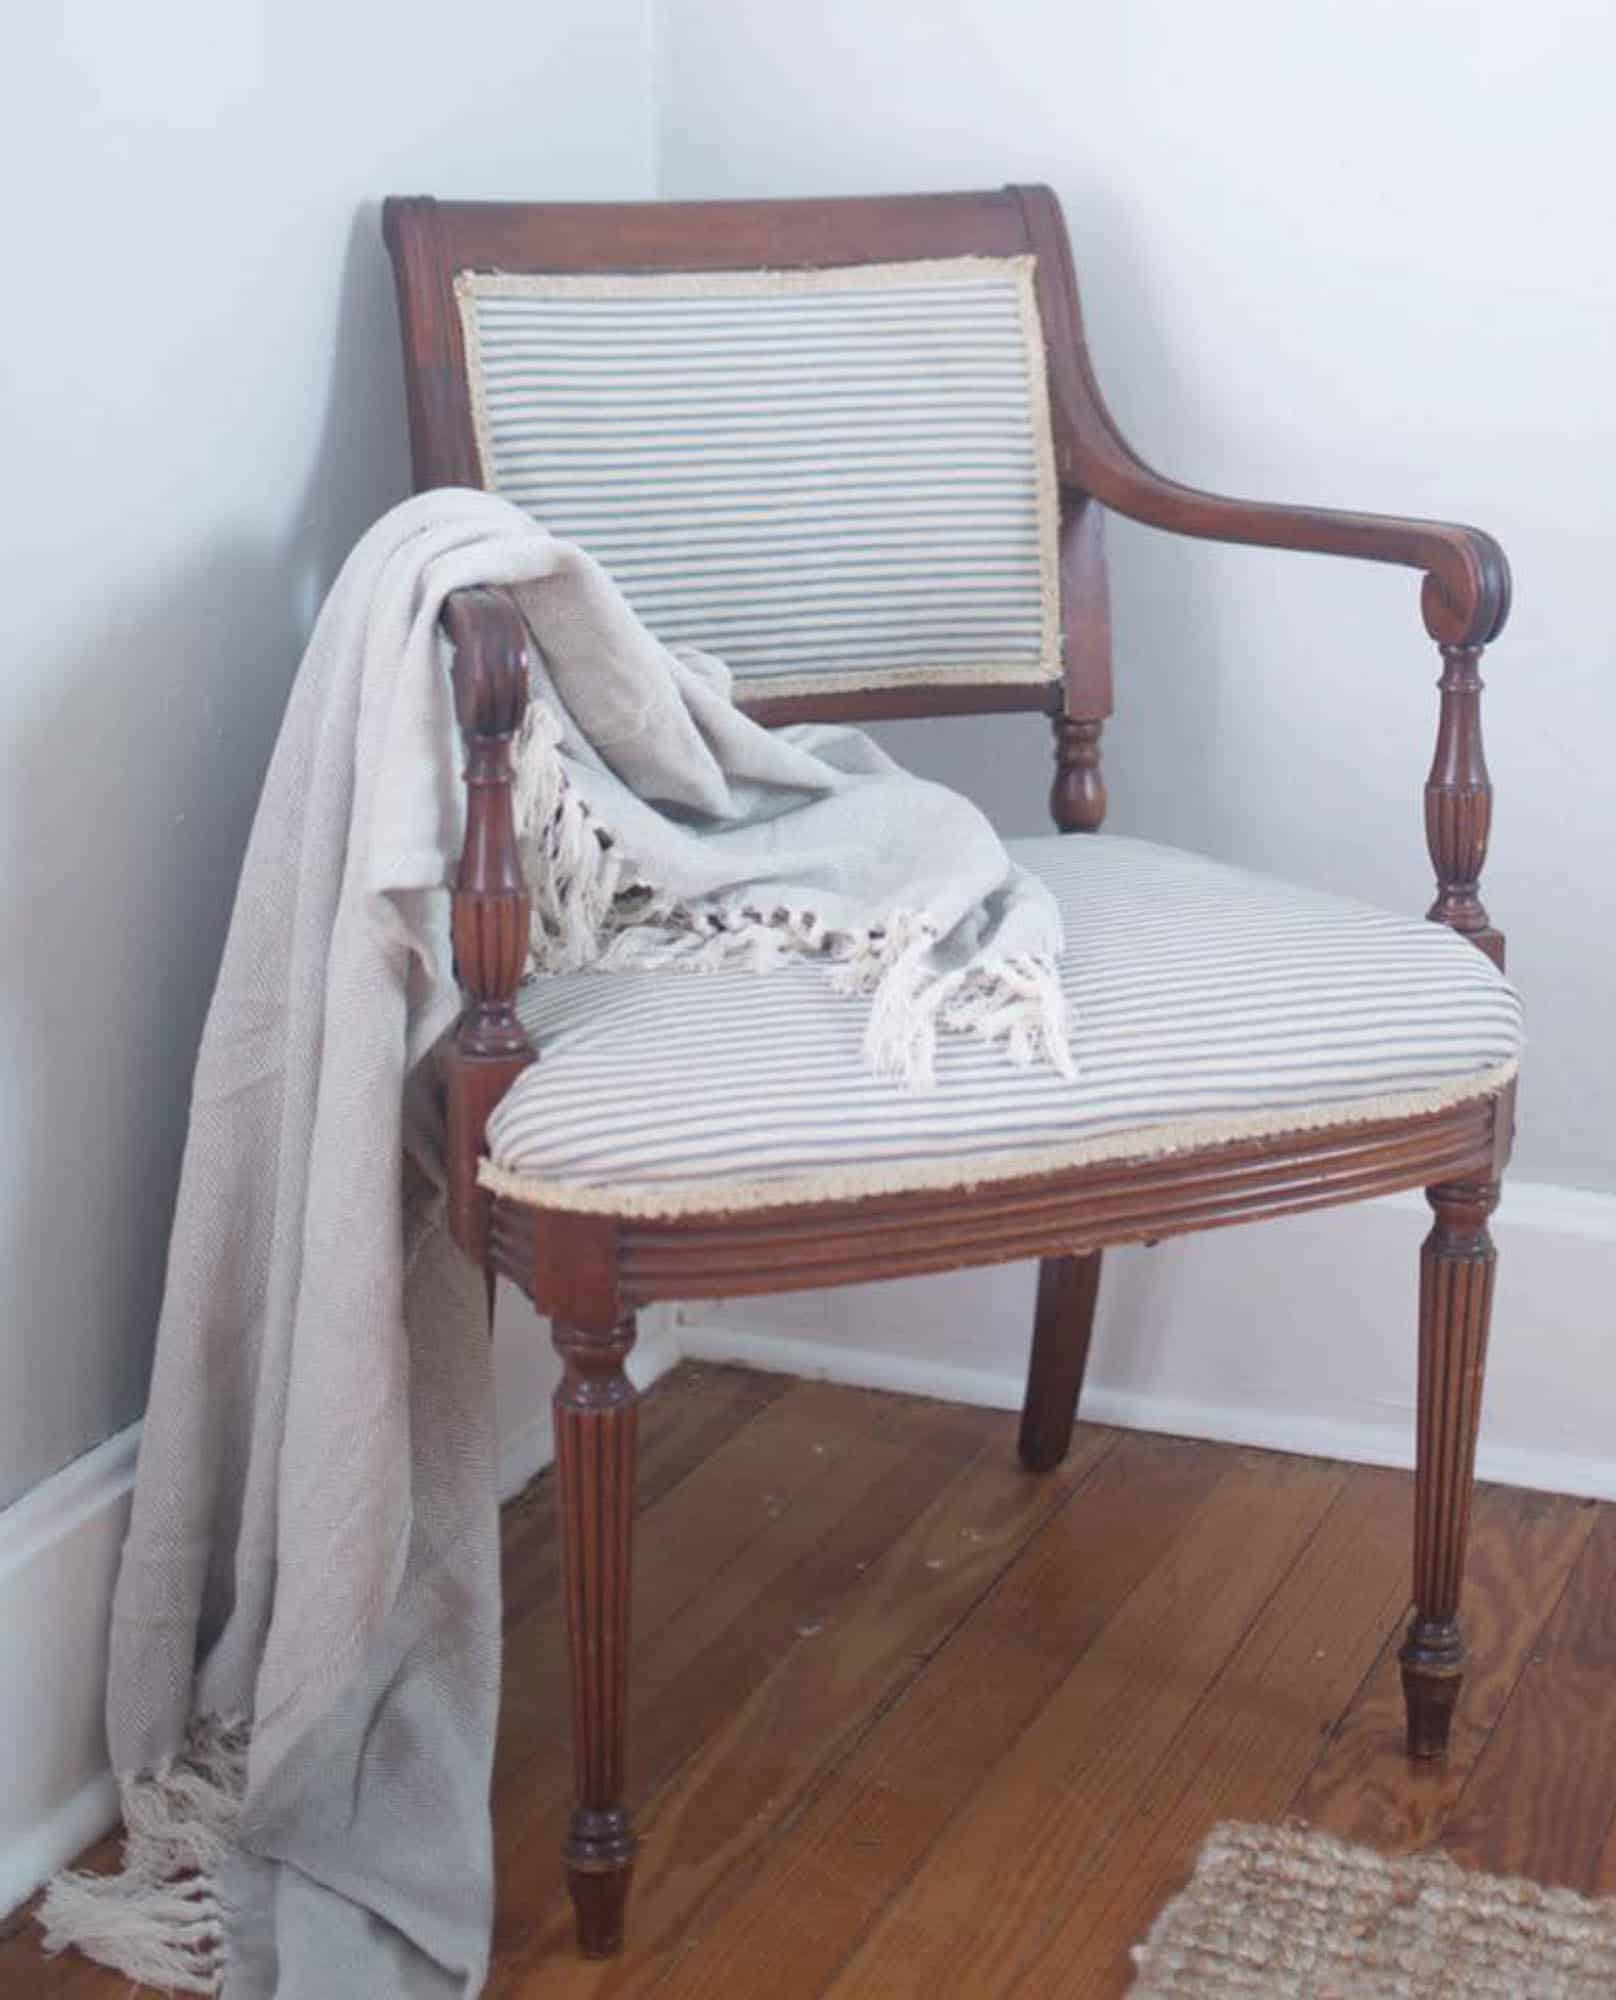 Learn How To Reupholster A Chair With A Staple Gun And Hot Glue. No Sewing